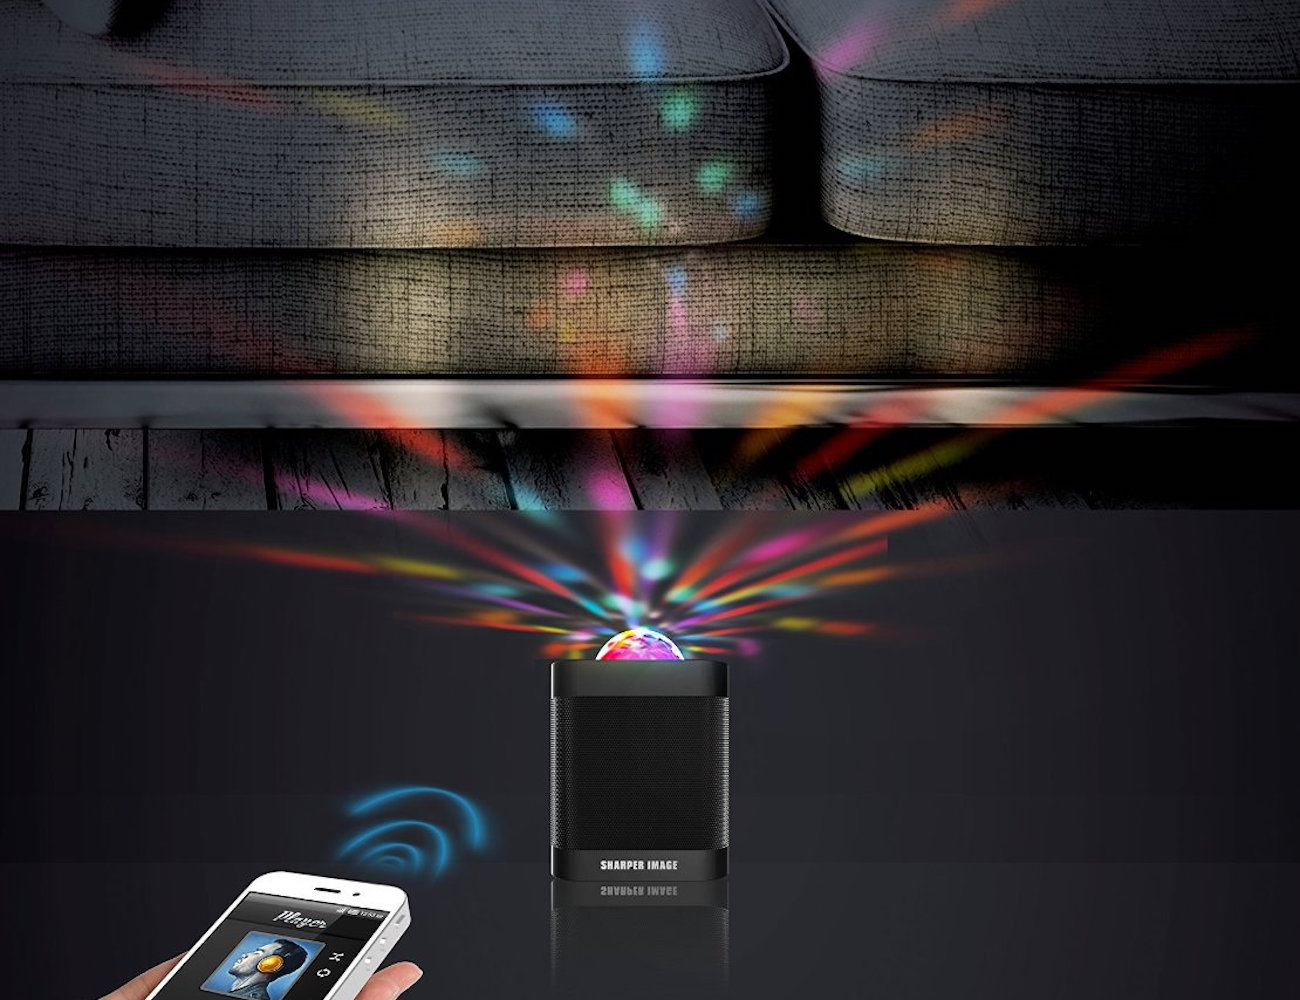 bluetooth-speaker-with-led-light-show-from-sharper-image-03